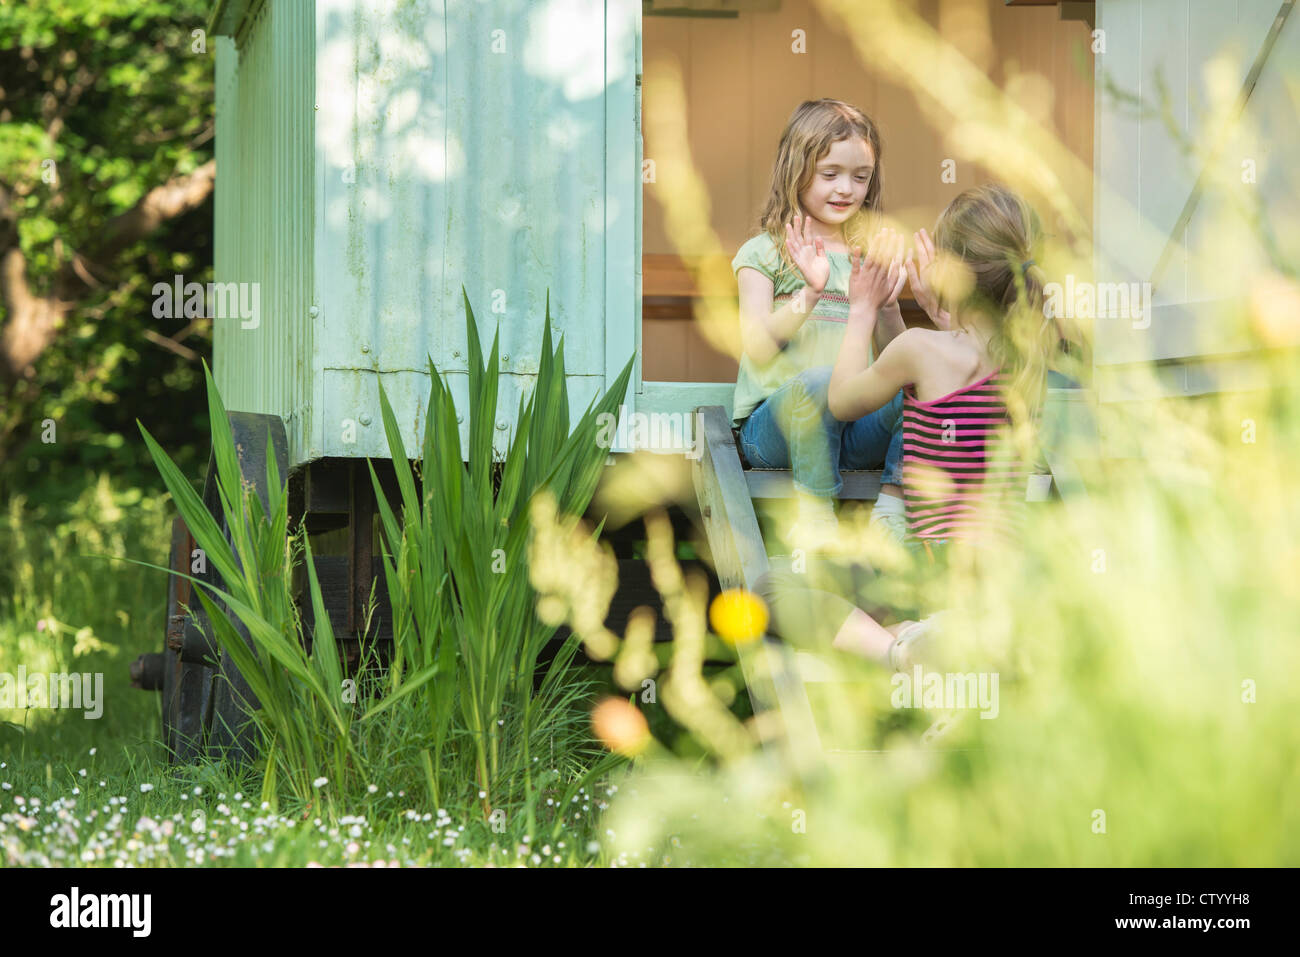 Girls playing together in doorway - Stock Image